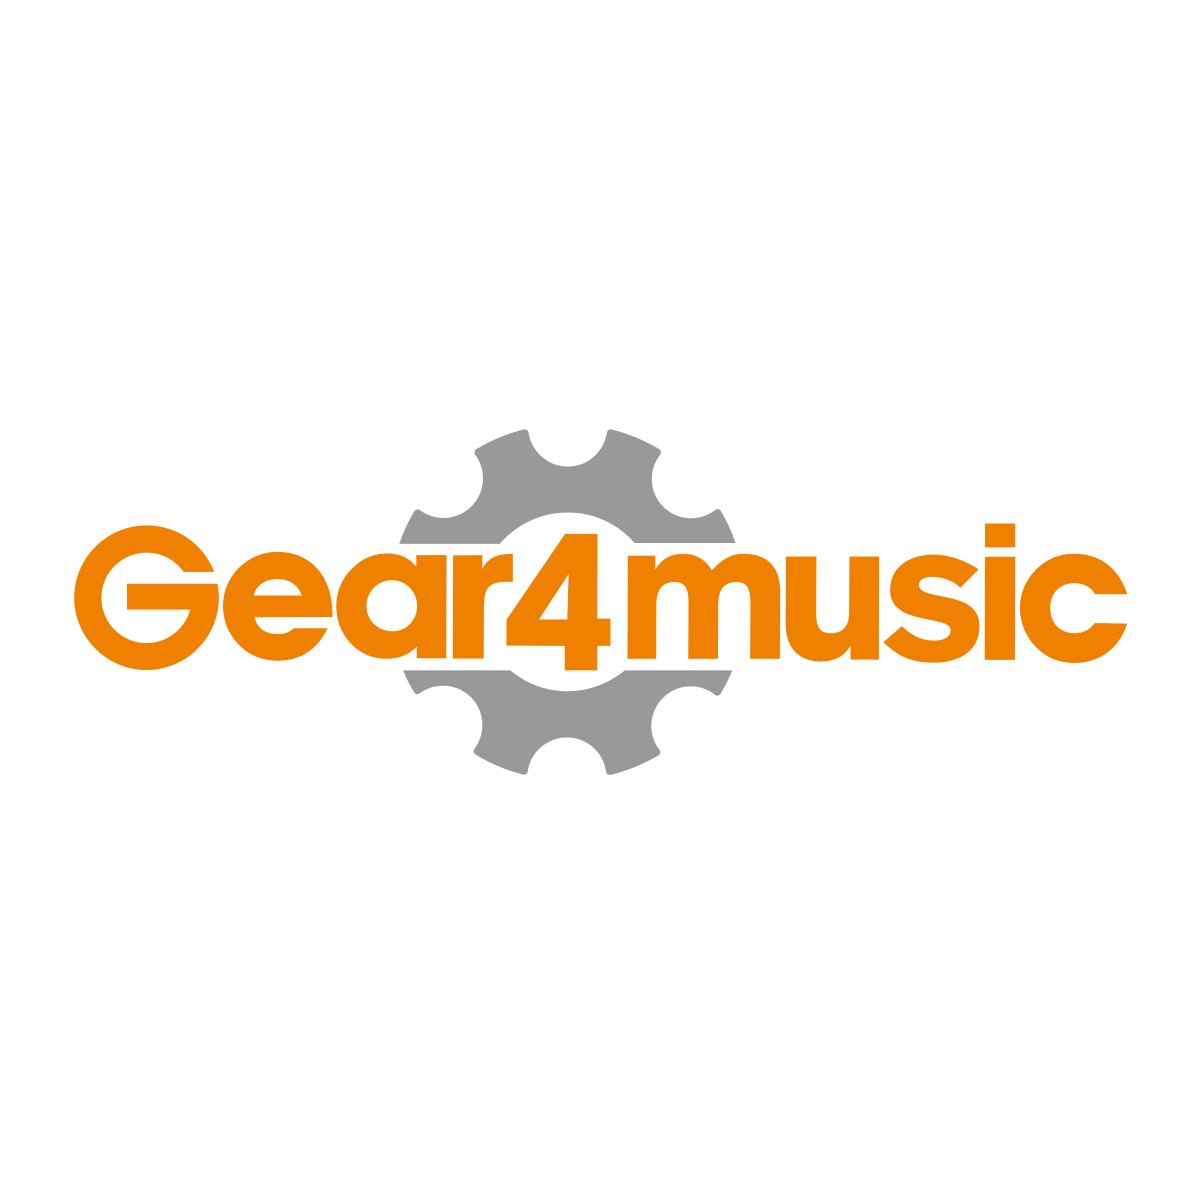 Lámpara de Atril de Gear4music - 2 LED